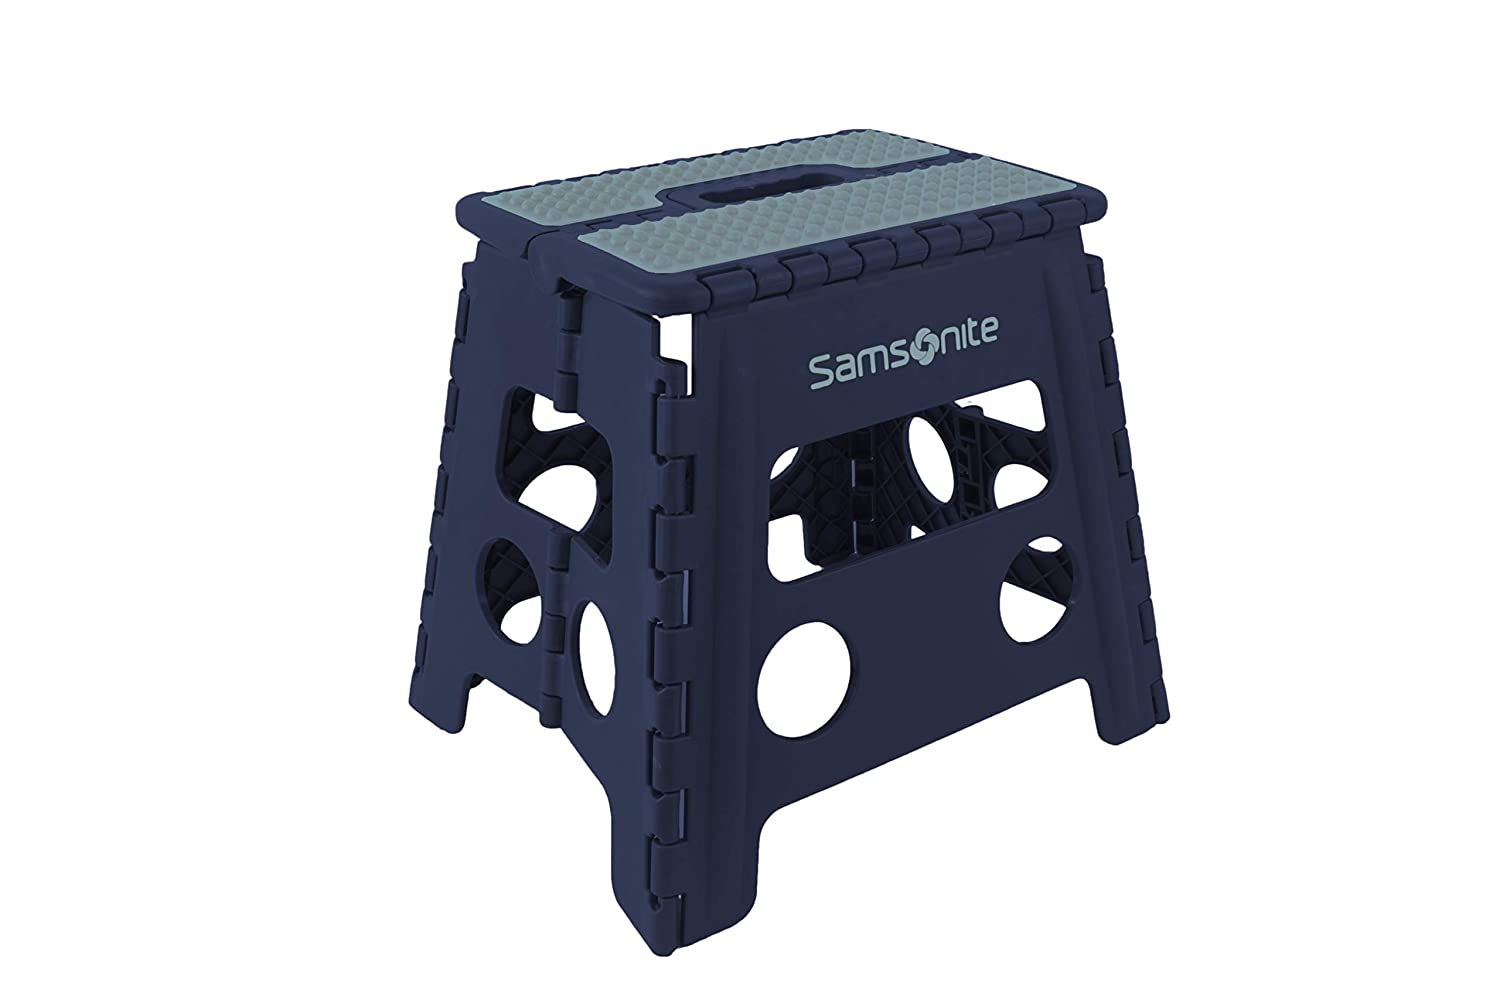 Phenomenal Amazon Com Samsonite Heavy Duty Step Stool In Navy Blue Ocoug Best Dining Table And Chair Ideas Images Ocougorg